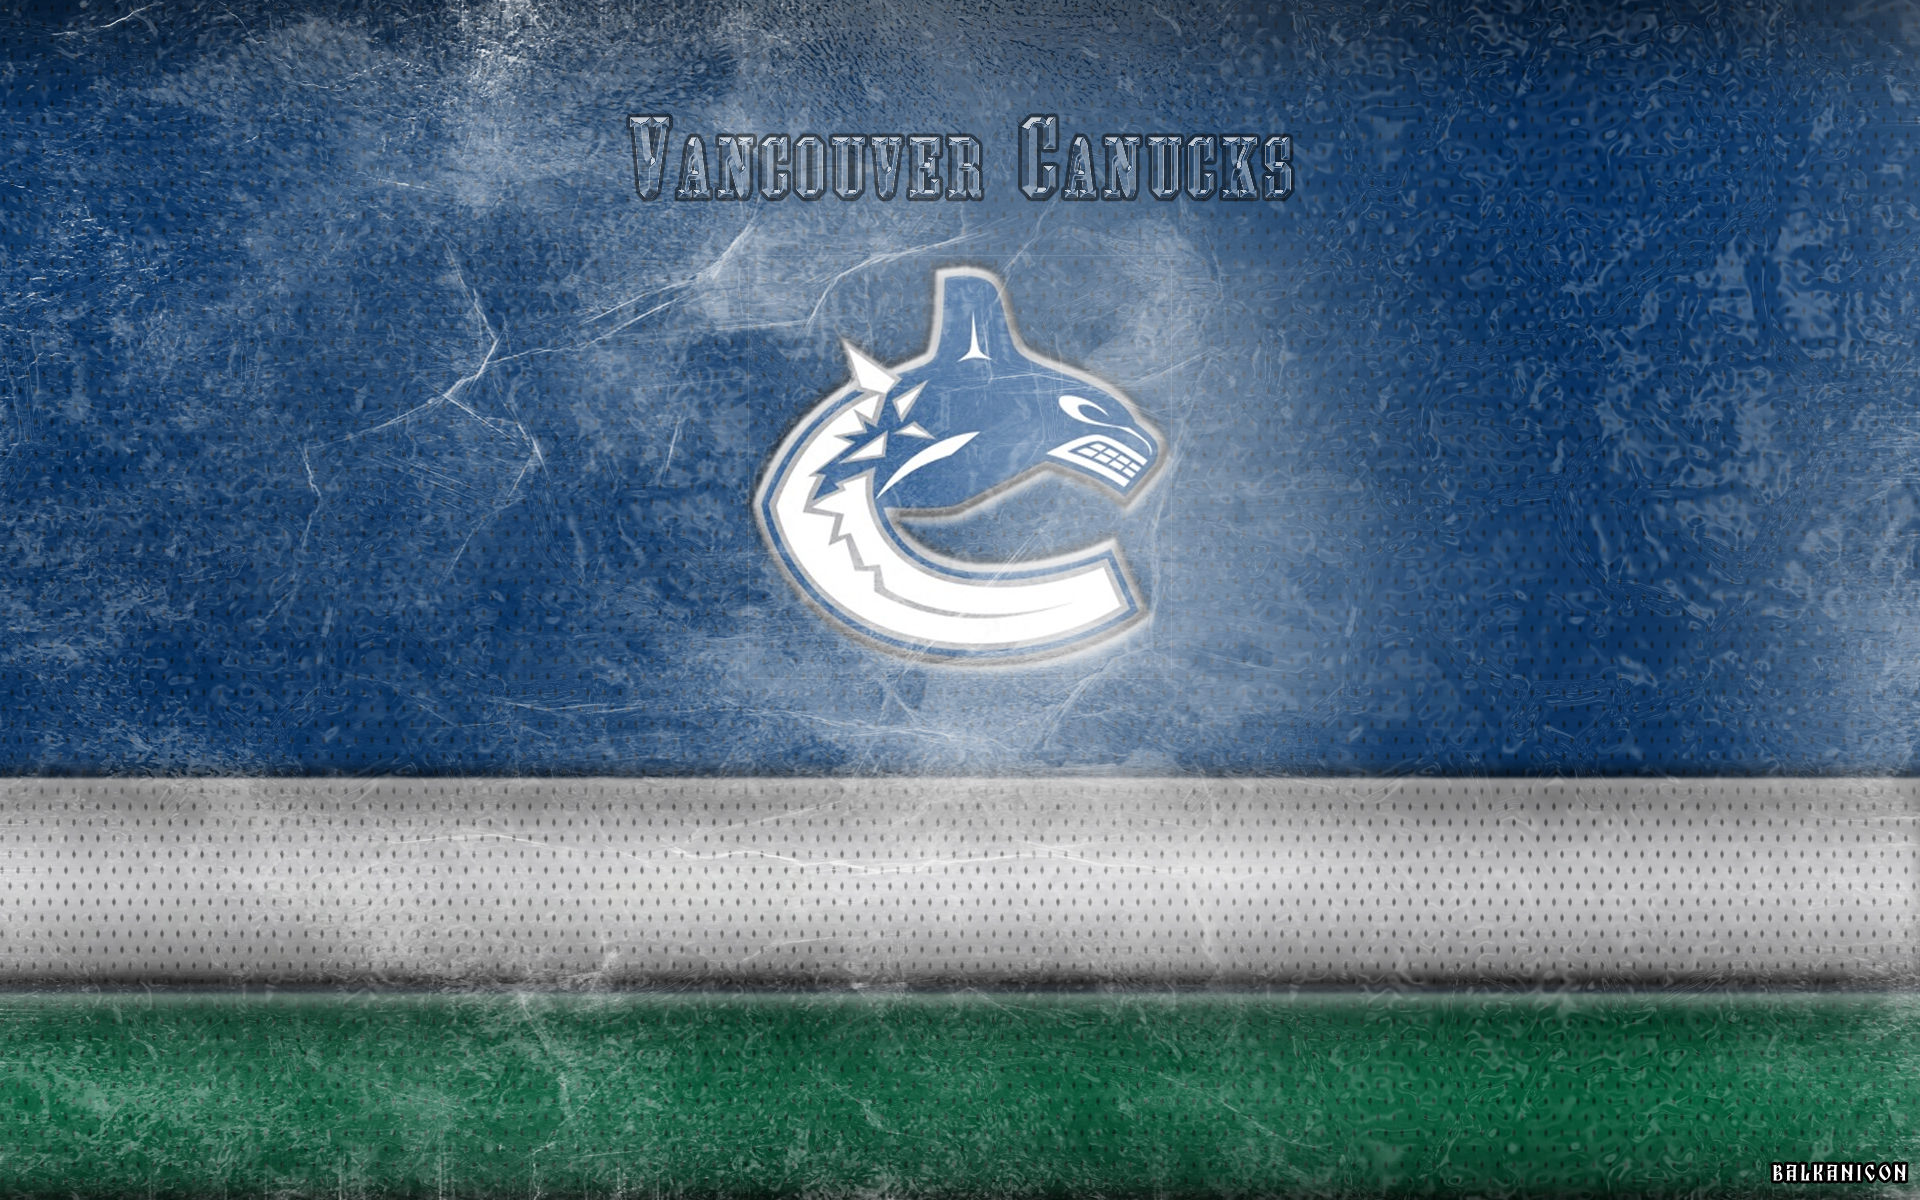 Vancouver Canucks wallpaper by Balkanicon 1920x1200